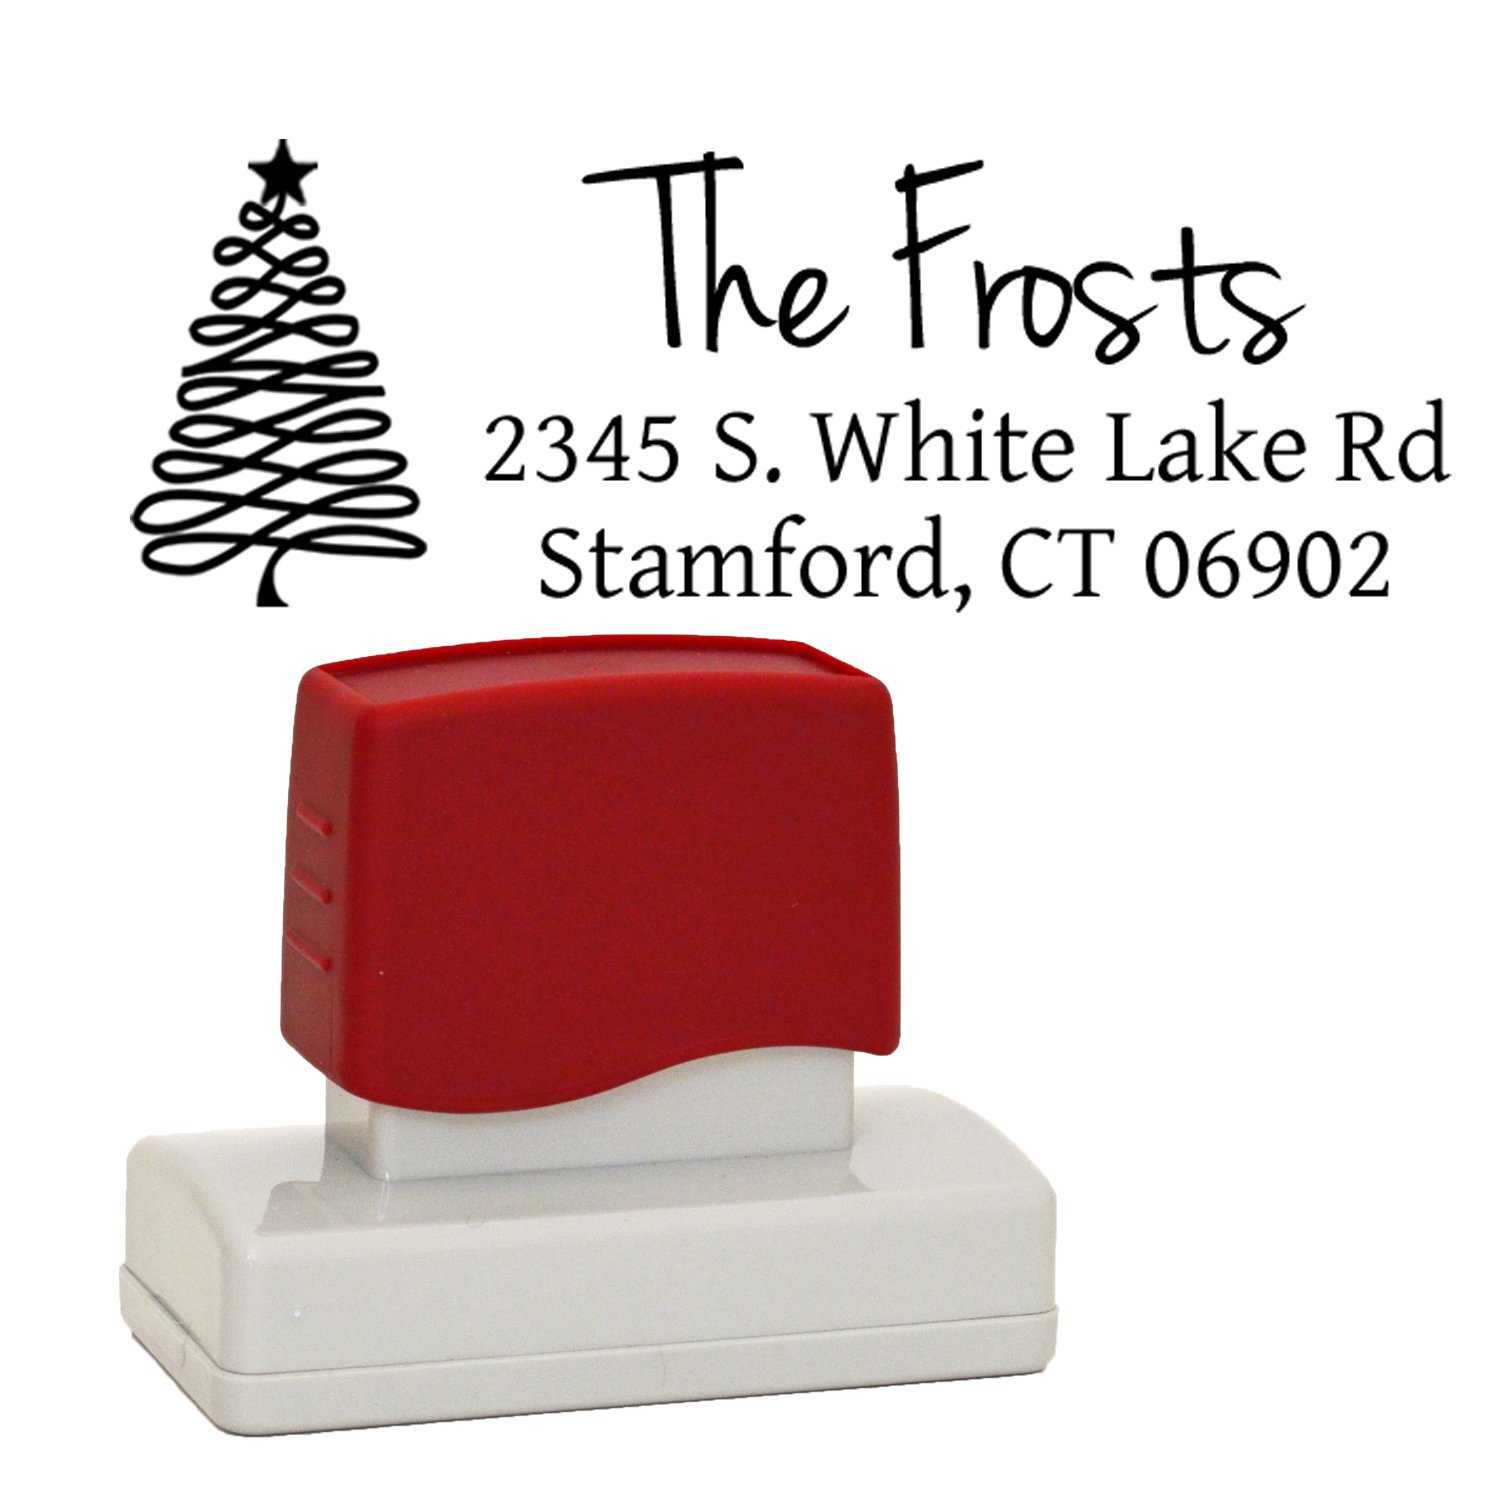 Amazon.com : Holiday Rubber Address Stamp, Self-Inking Stamper ...